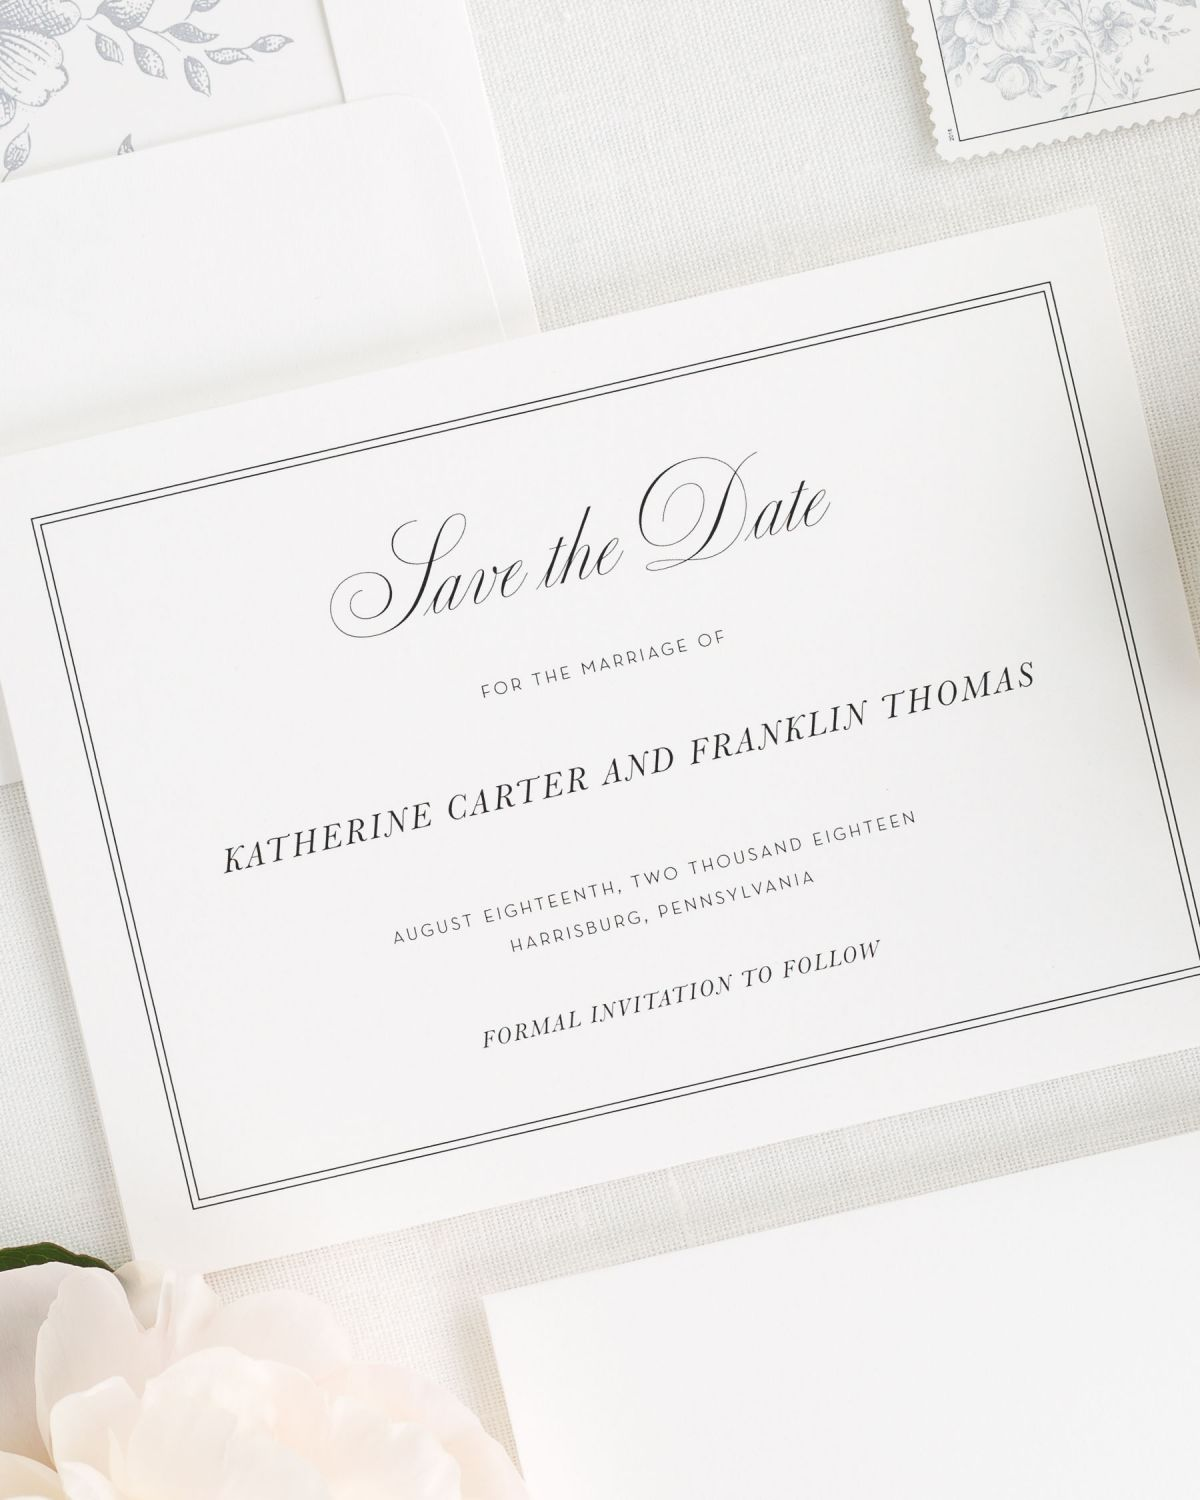 Simply Classic Save the Date Cards - Save the Date Cards by Shine